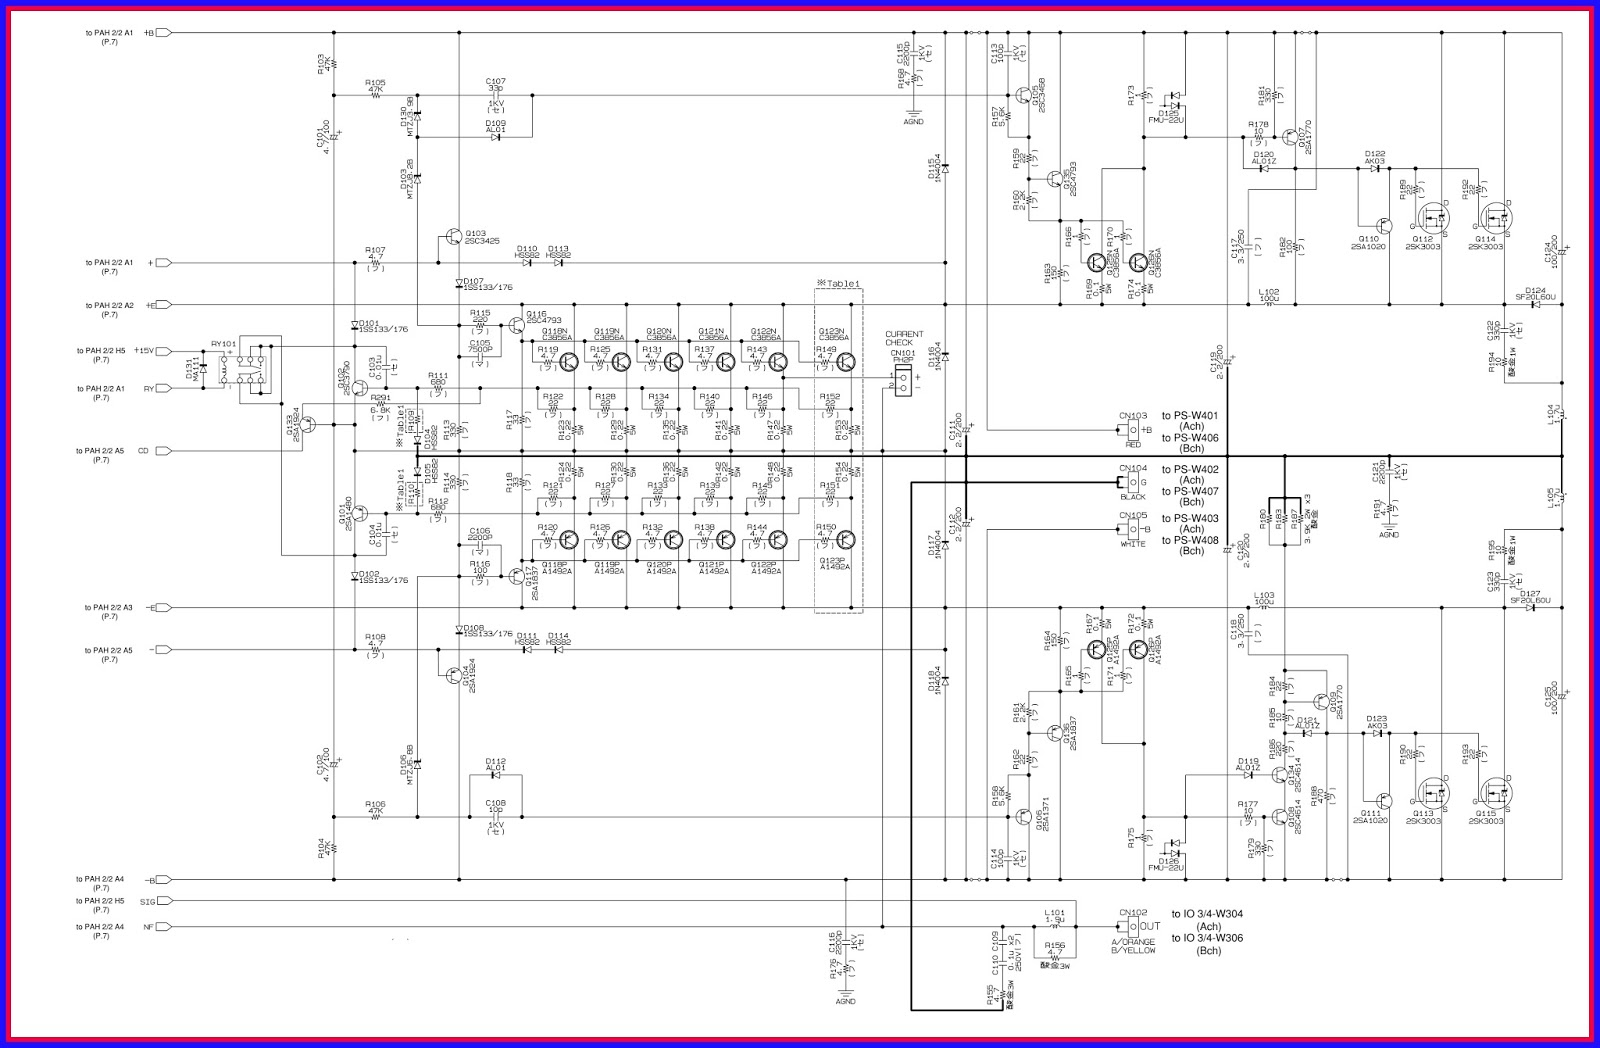 1 electronic equipment repair centre yamaha xp7000 xp5000 power yamaha schematic diagram at n-0.co